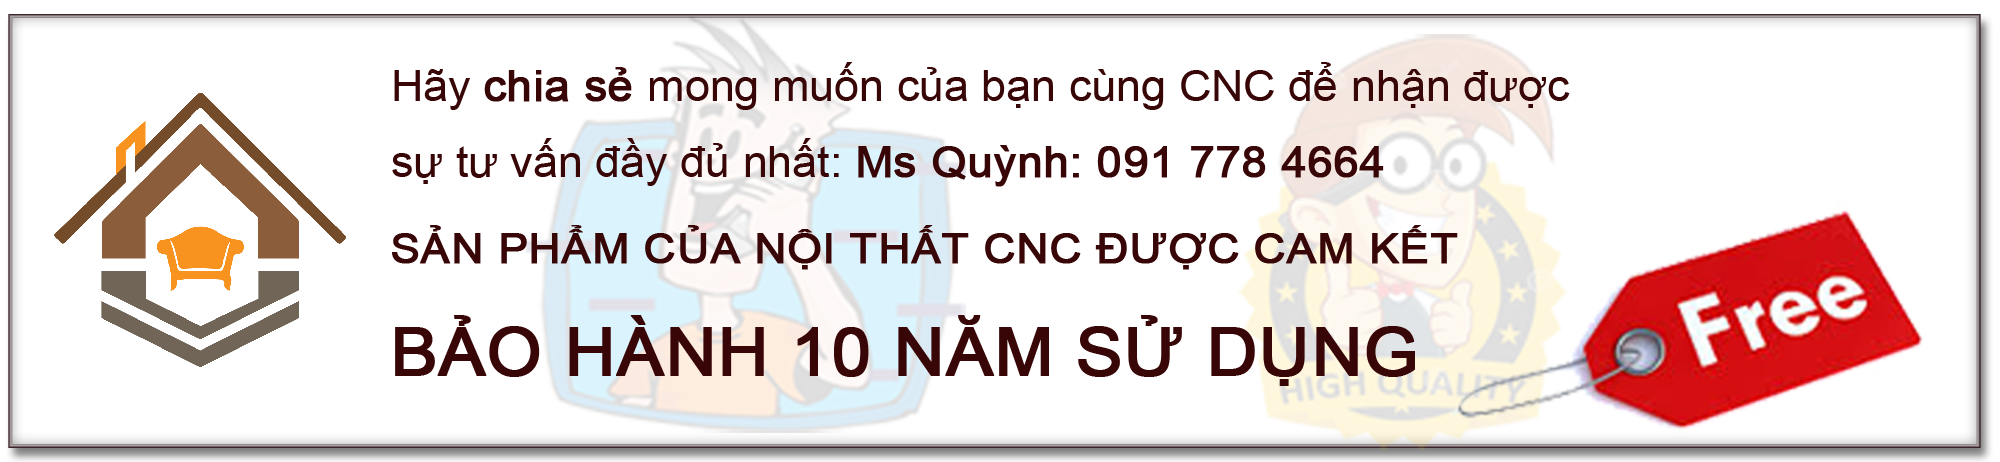 công ty đồ gỗ nội thất CNC